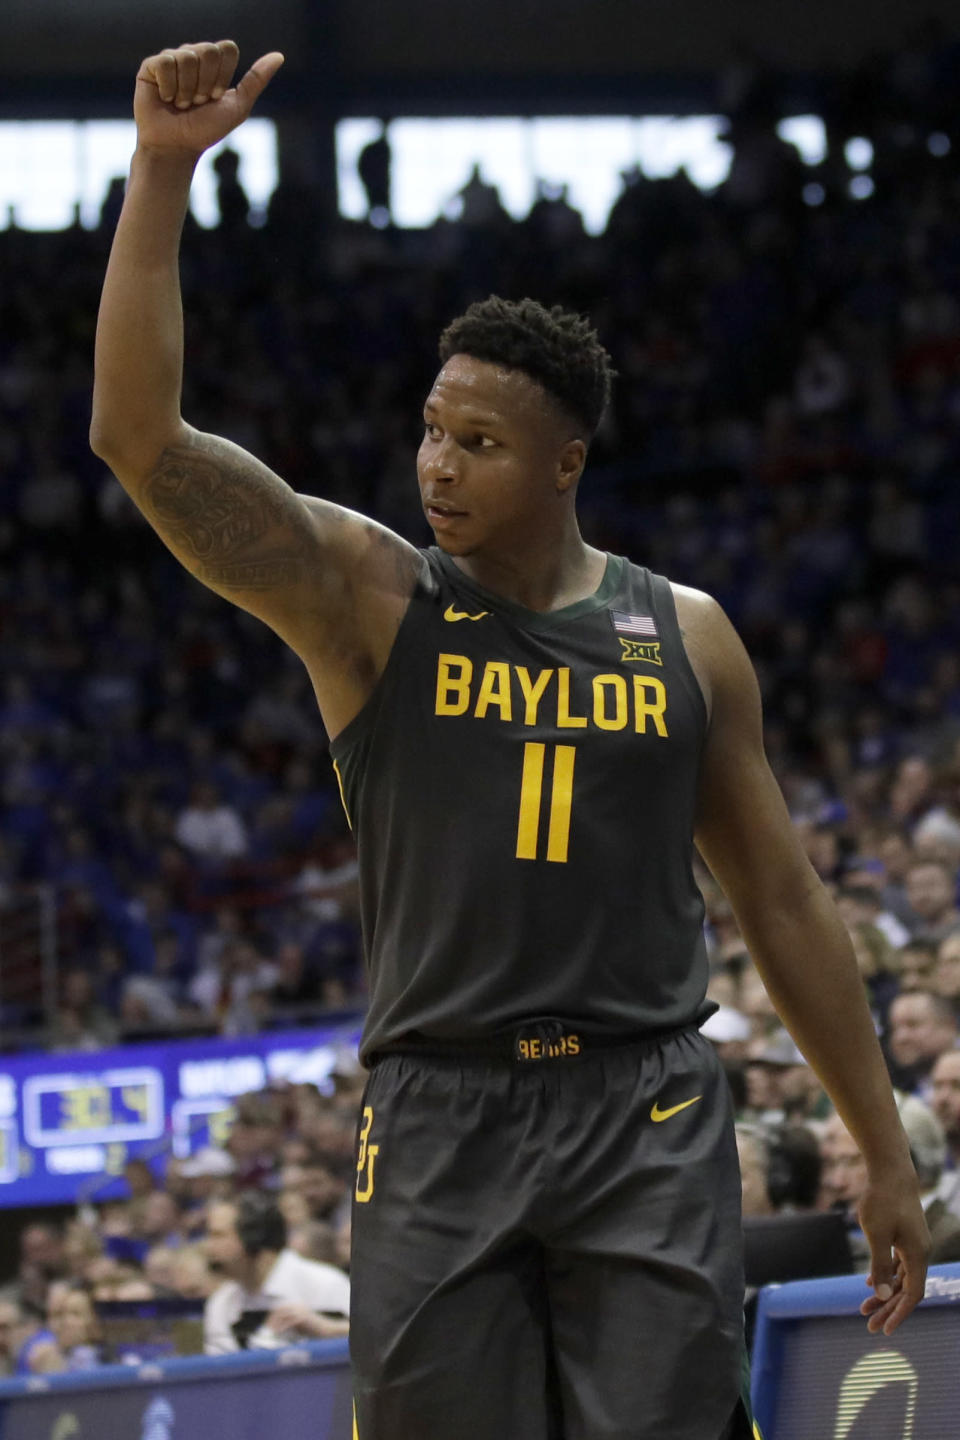 Baylor guard Mark Vital (11) gestures toward the bench during the second half of an NCAA college basketball game against Kansas in Lawrence, Kan., Saturday, Jan. 11, 2020. Baylor defeated Kansas 55-67. (AP Photo/Orlin Wagner)